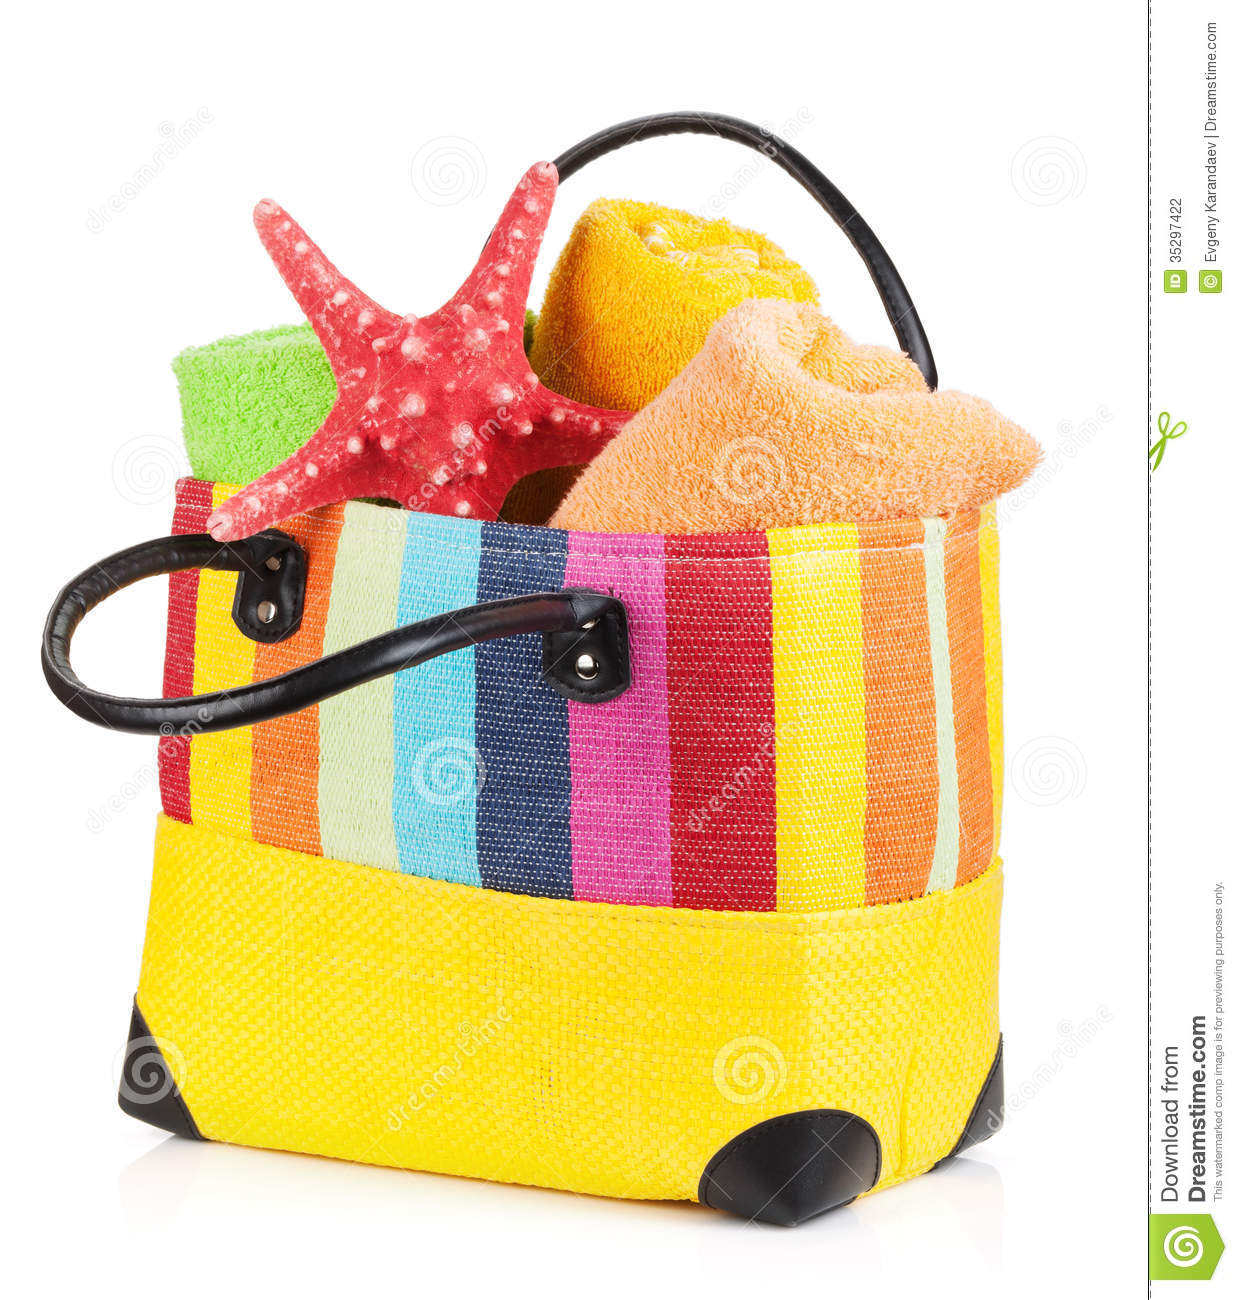 Clip Art Beach Blanket: Beach Bag With Towels Stock Photo. Image Of Basket